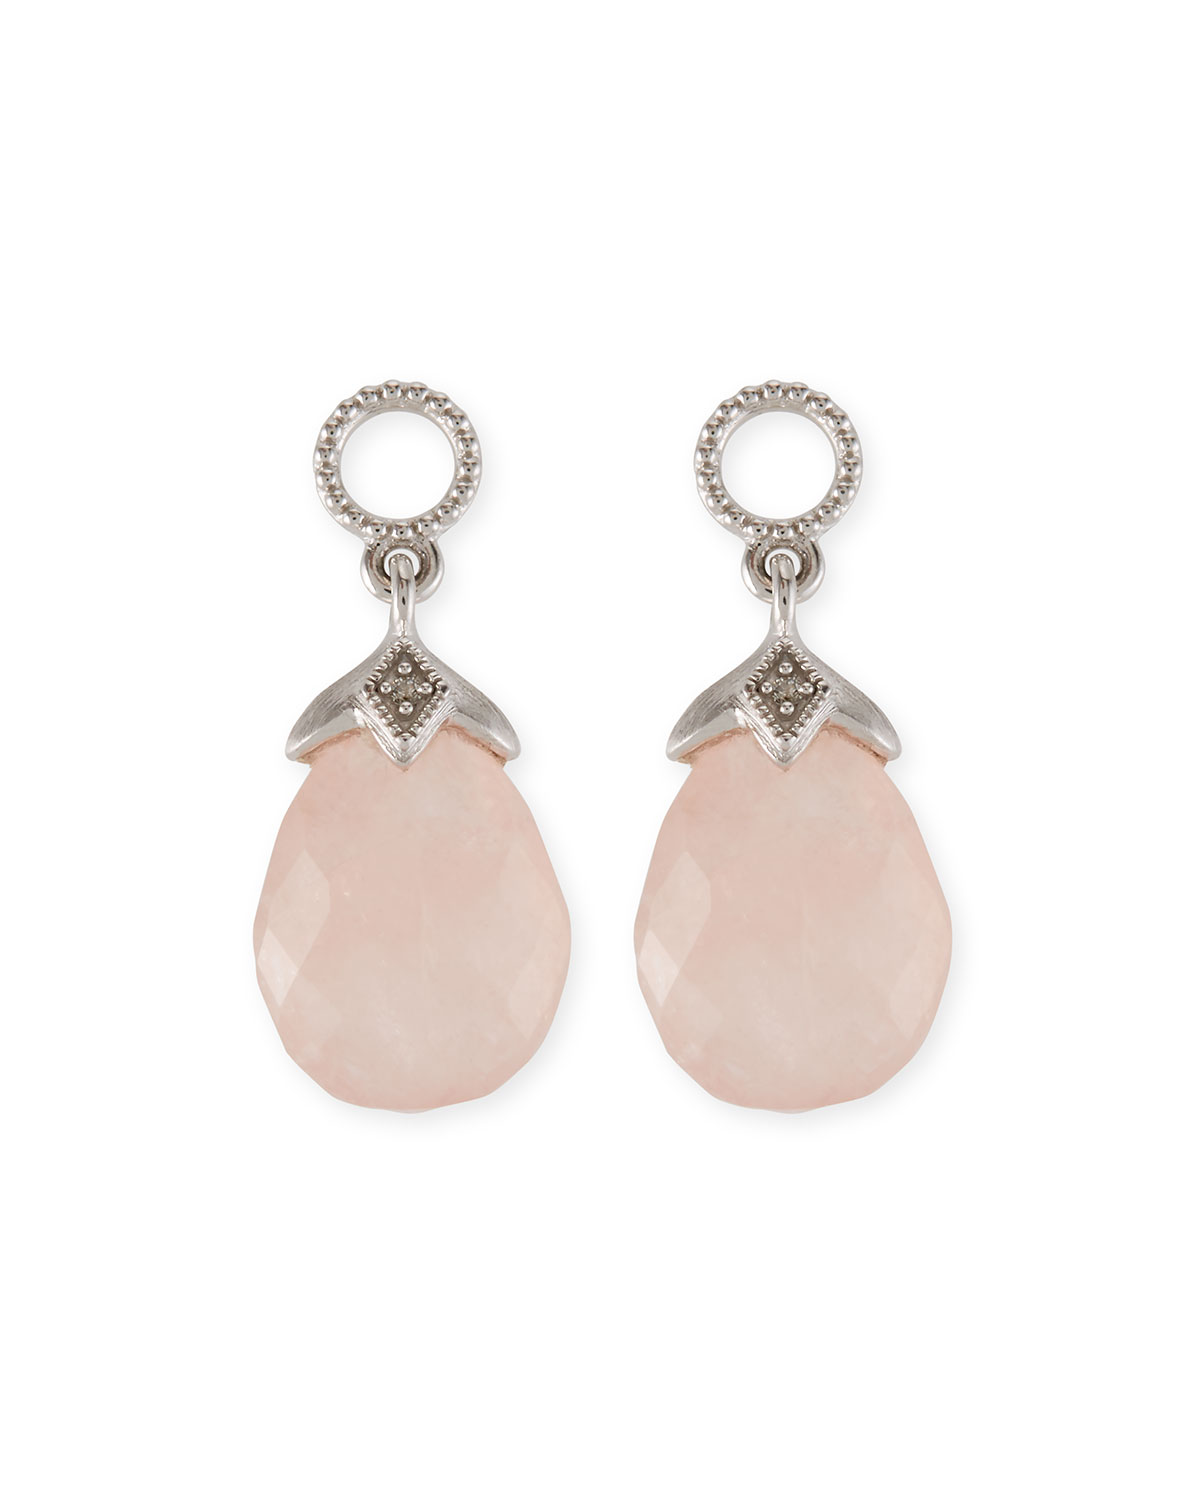 Lisse Morganite Briolette Earring Charms With Diamonds In 18k White Gold